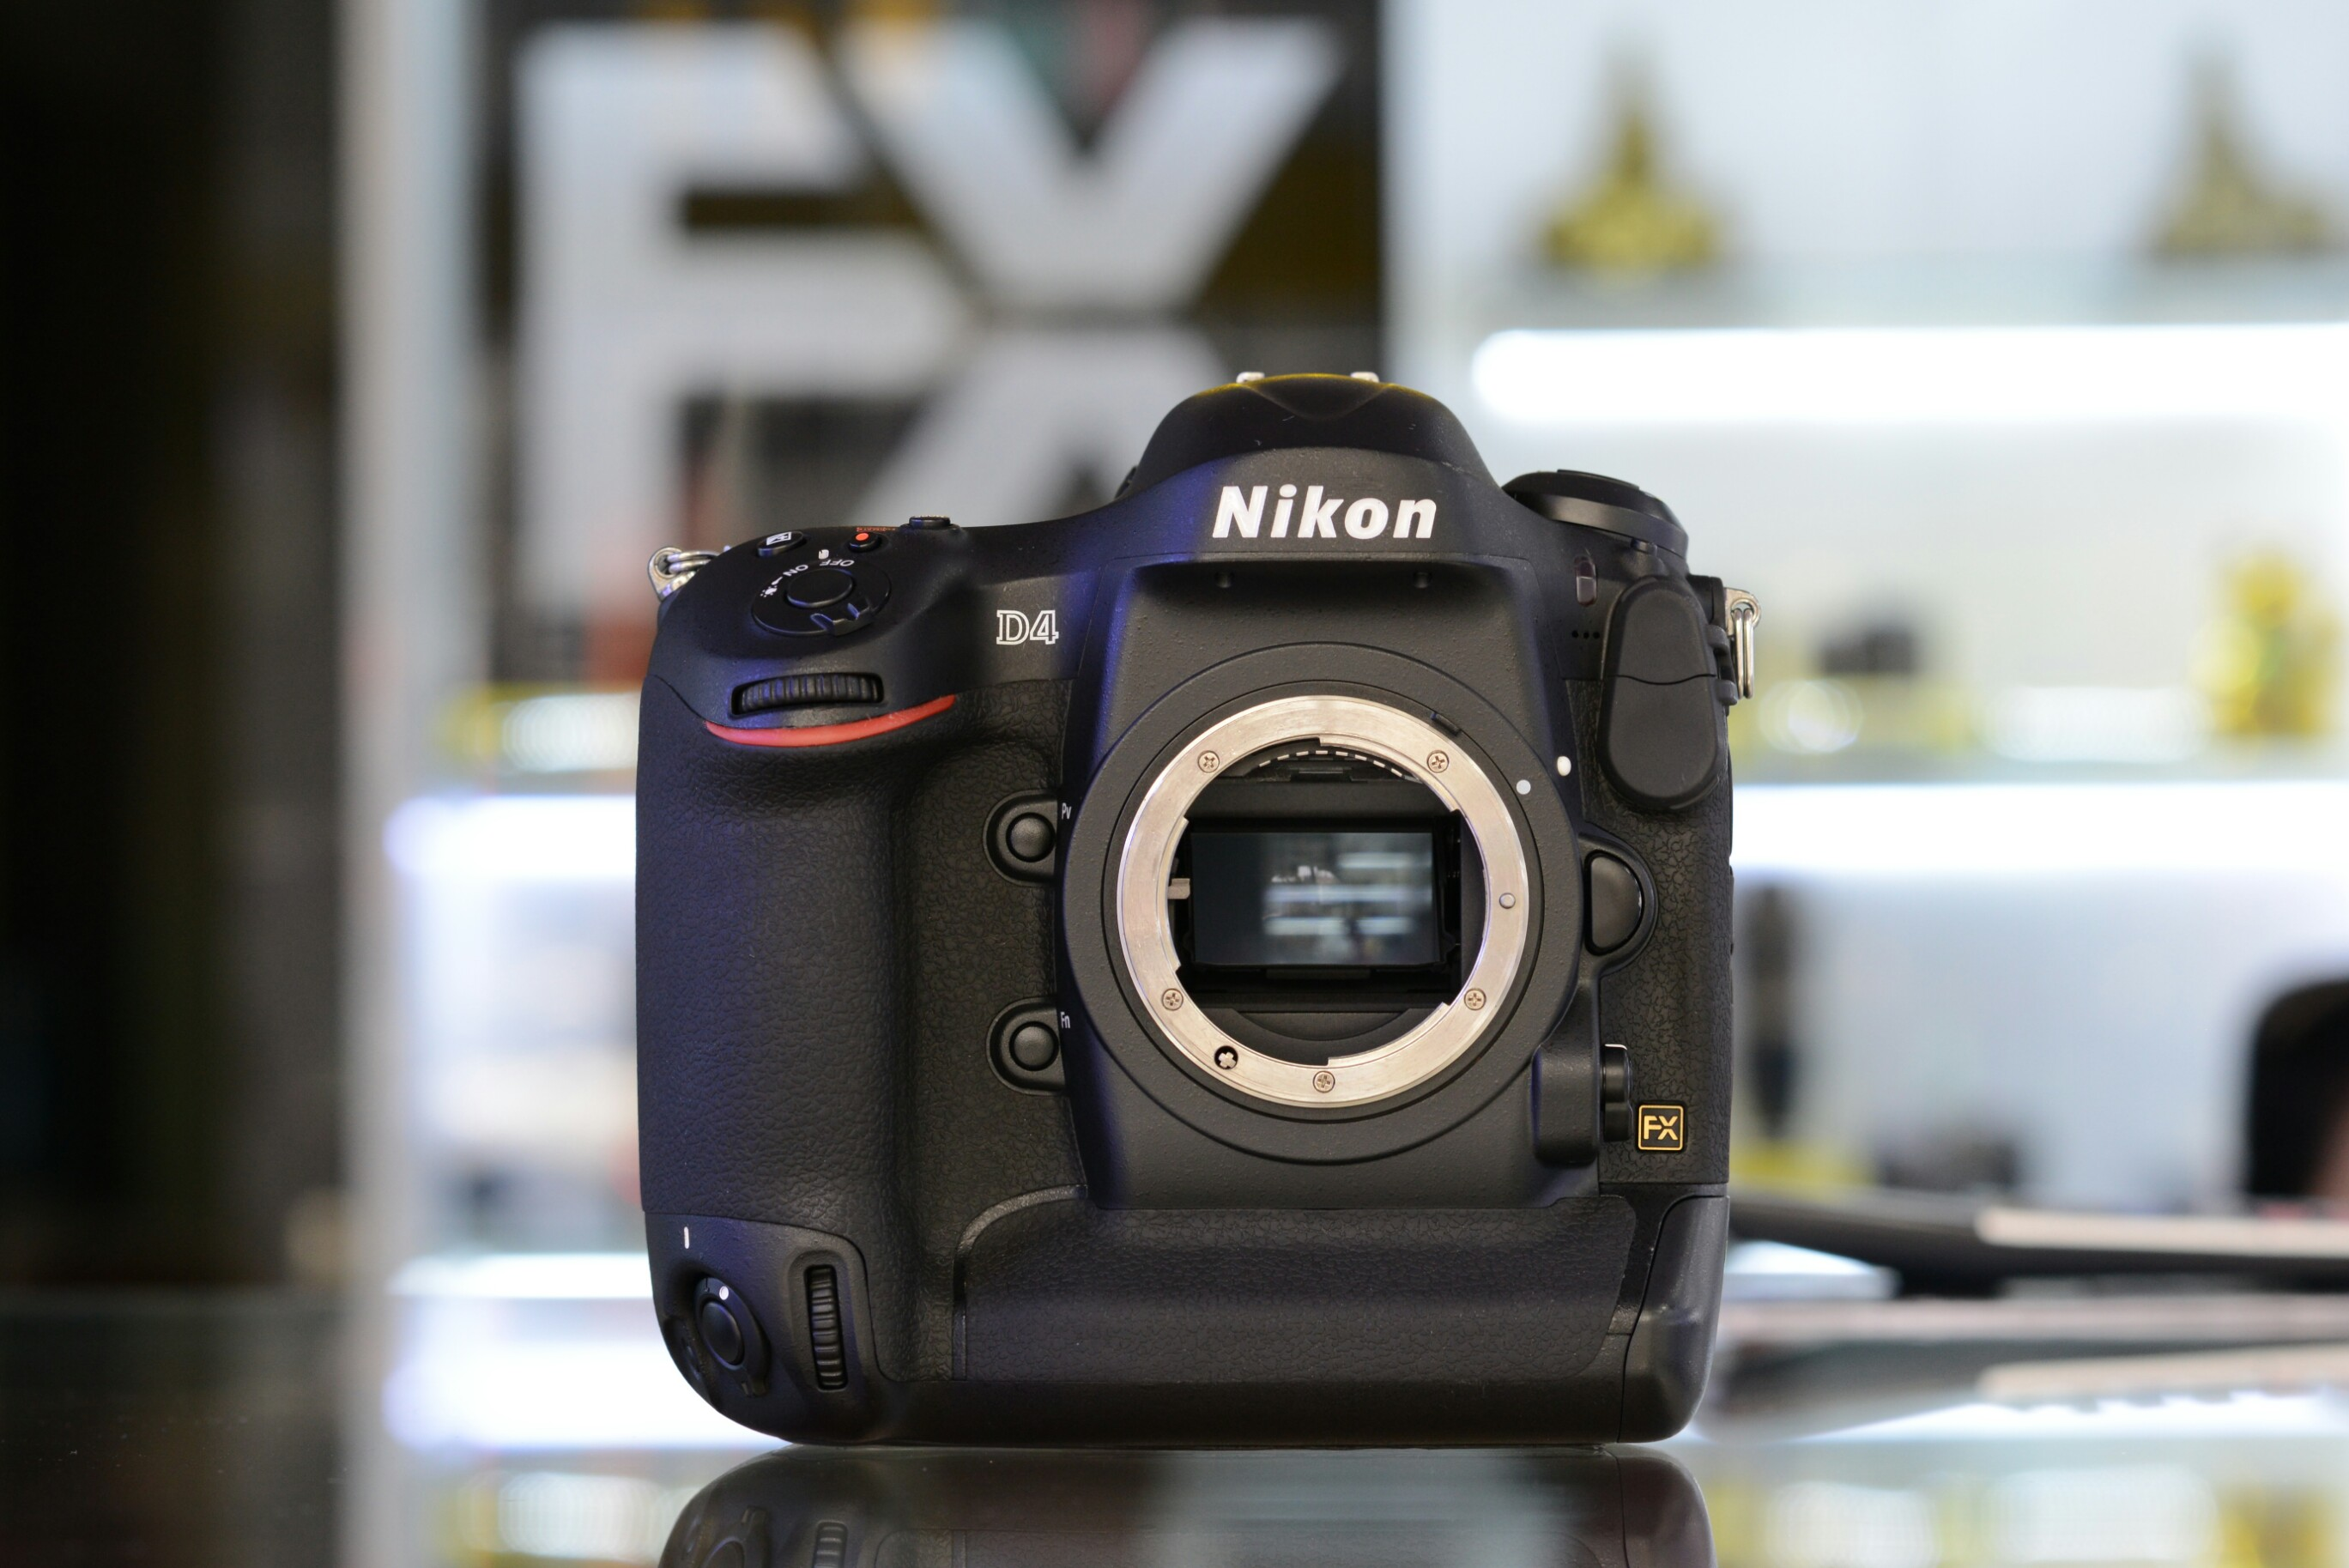 Nikon D4 Body (56.100 shot) fullbox